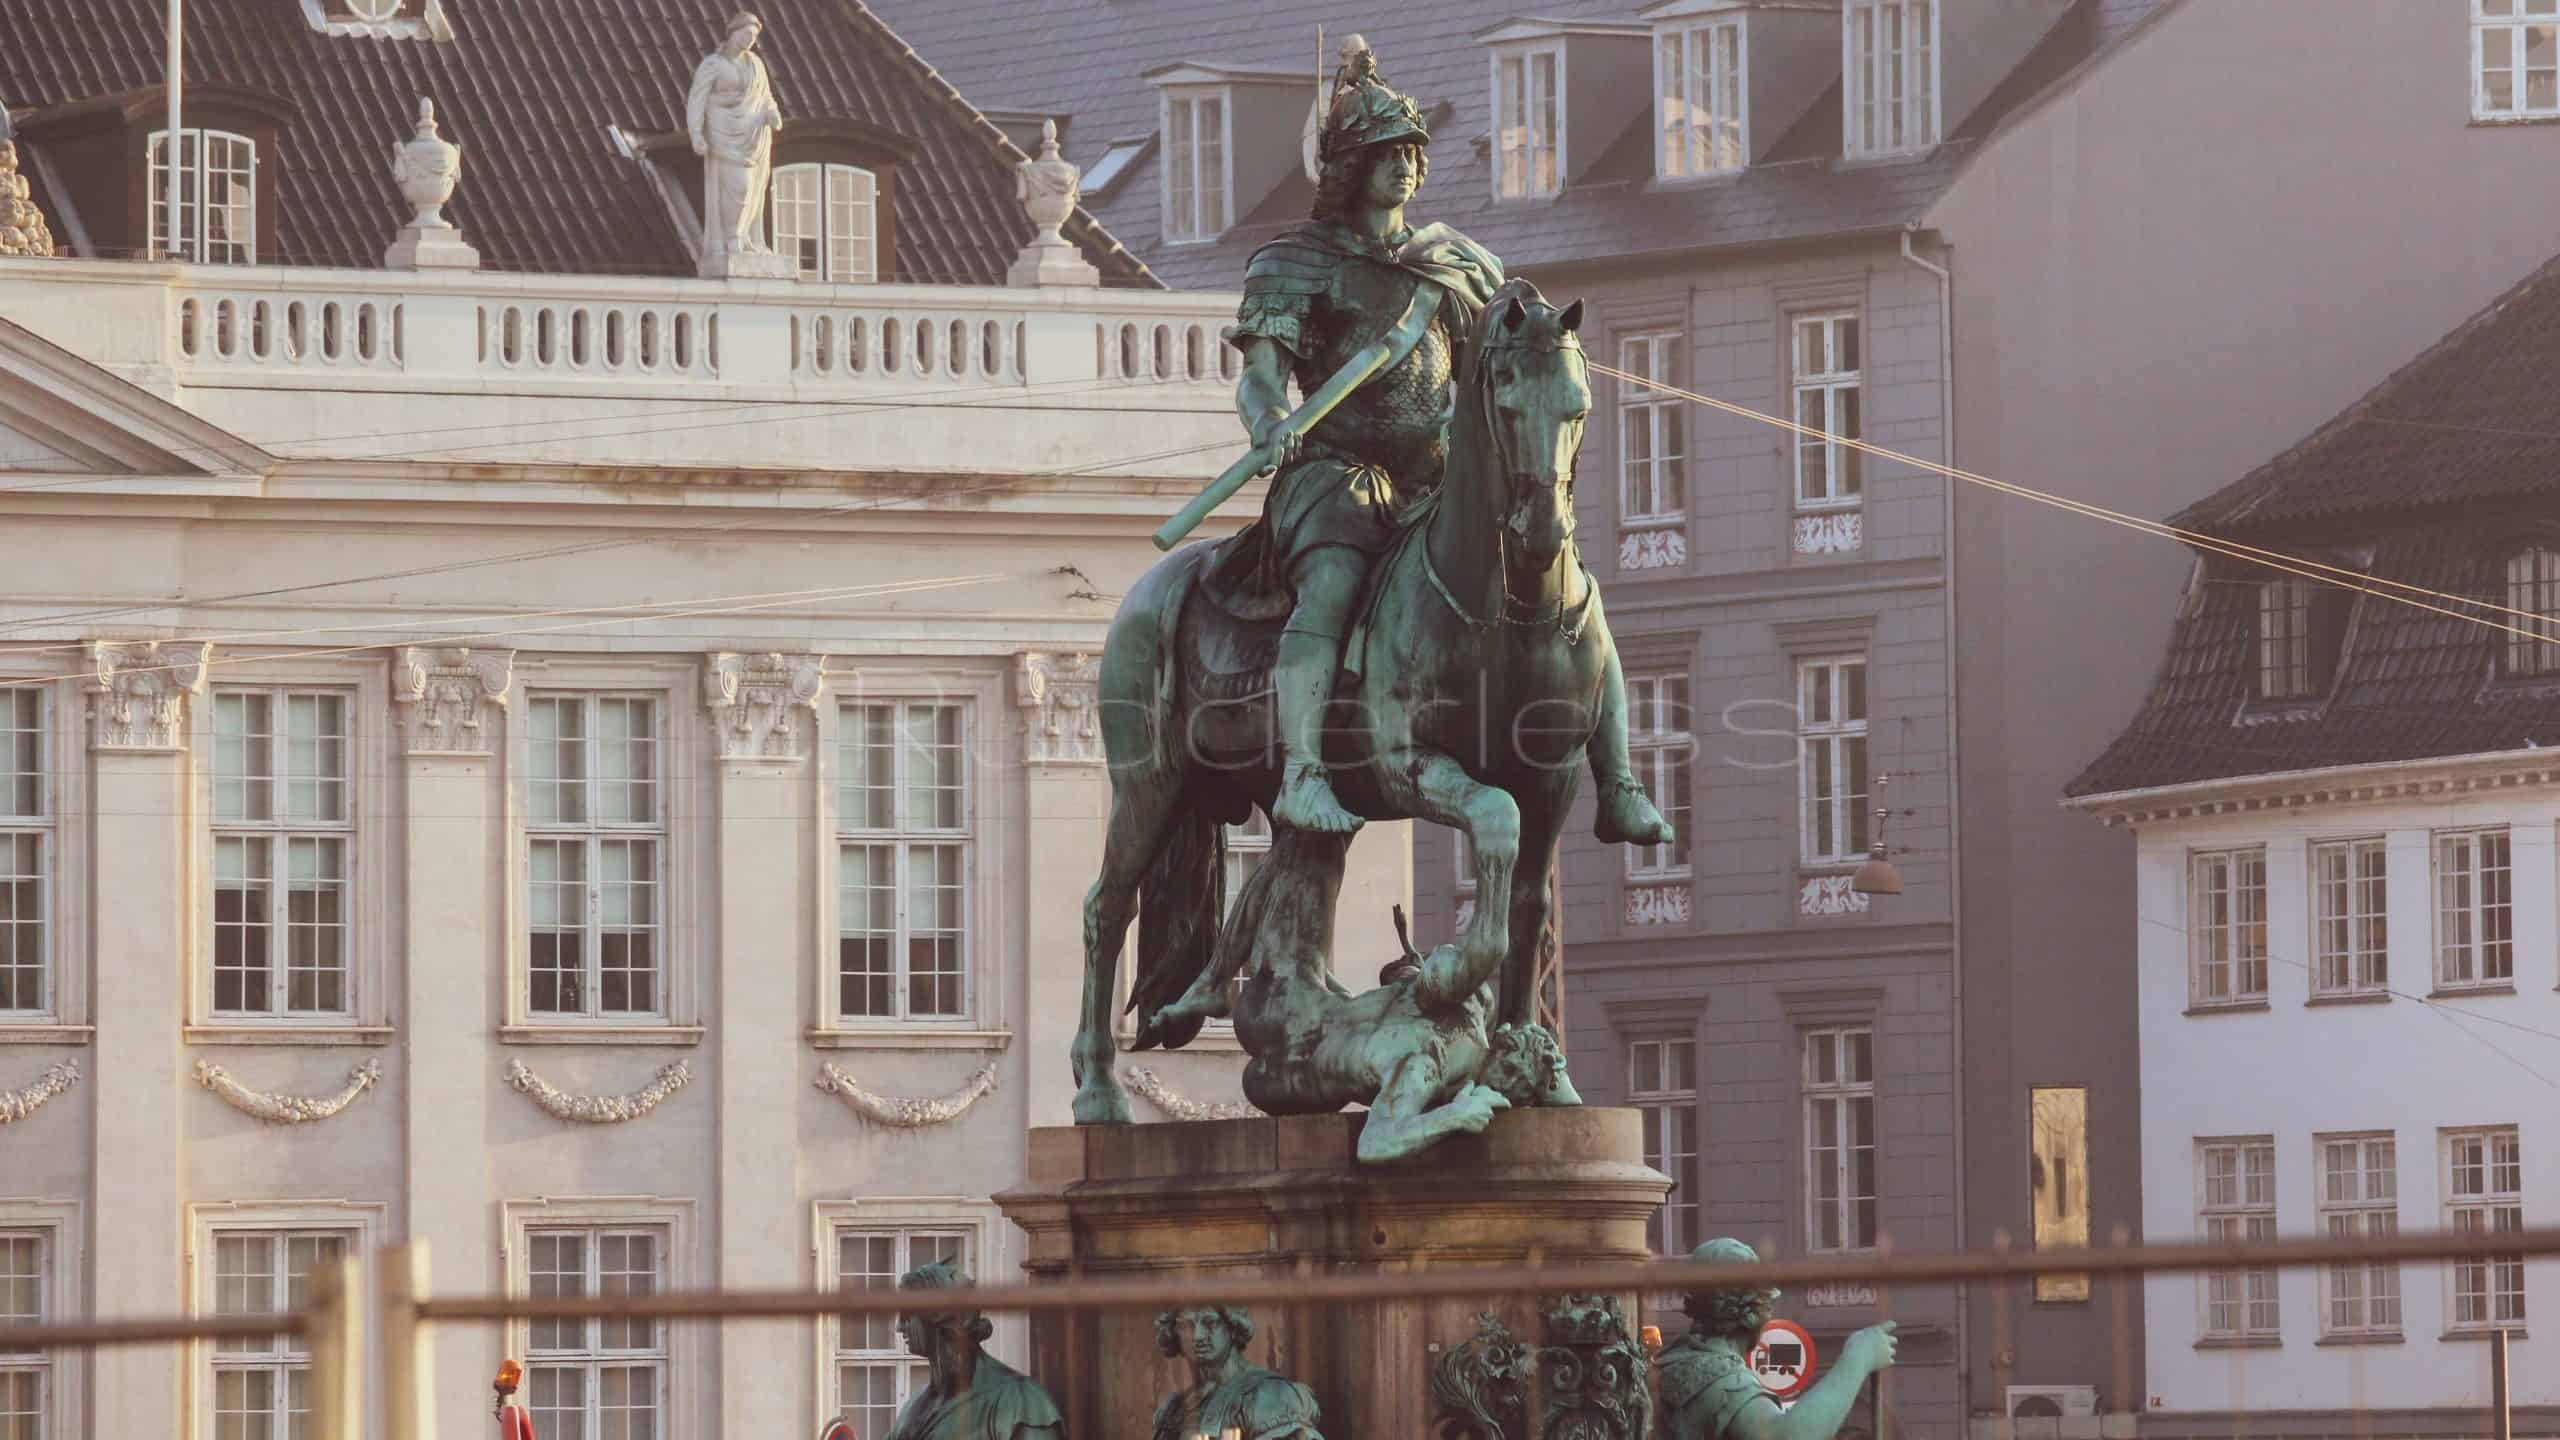 copenhagen points of interest - king's square